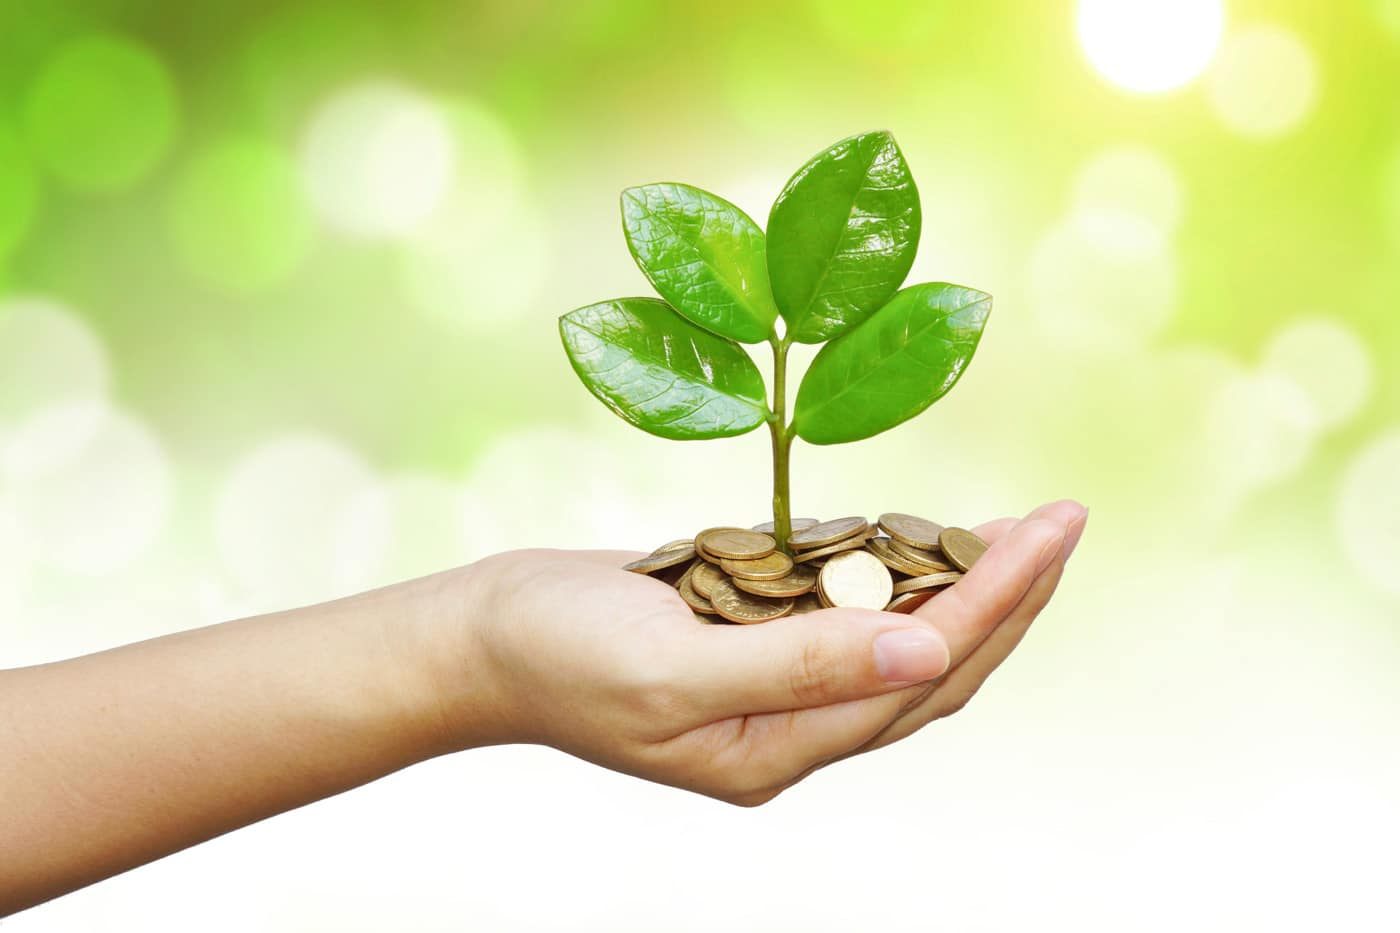 Stock photo of a hand holding a small plant that is growing out of coins